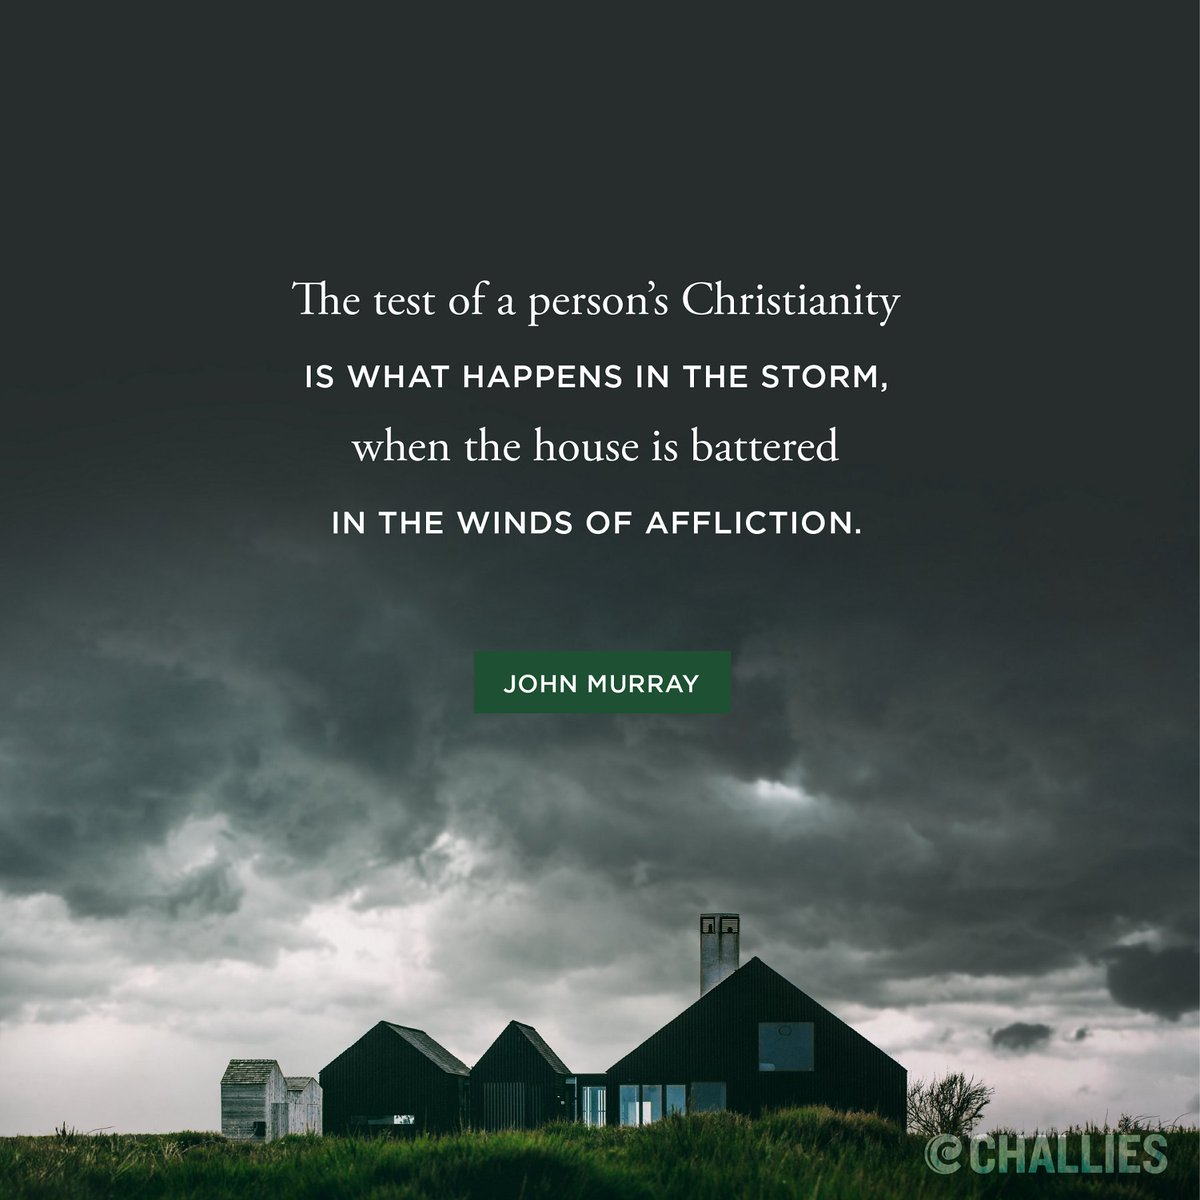 The test of a person's Christianity is what happens in the storm, when the house is battered in the winds of affliction. (John Murray)